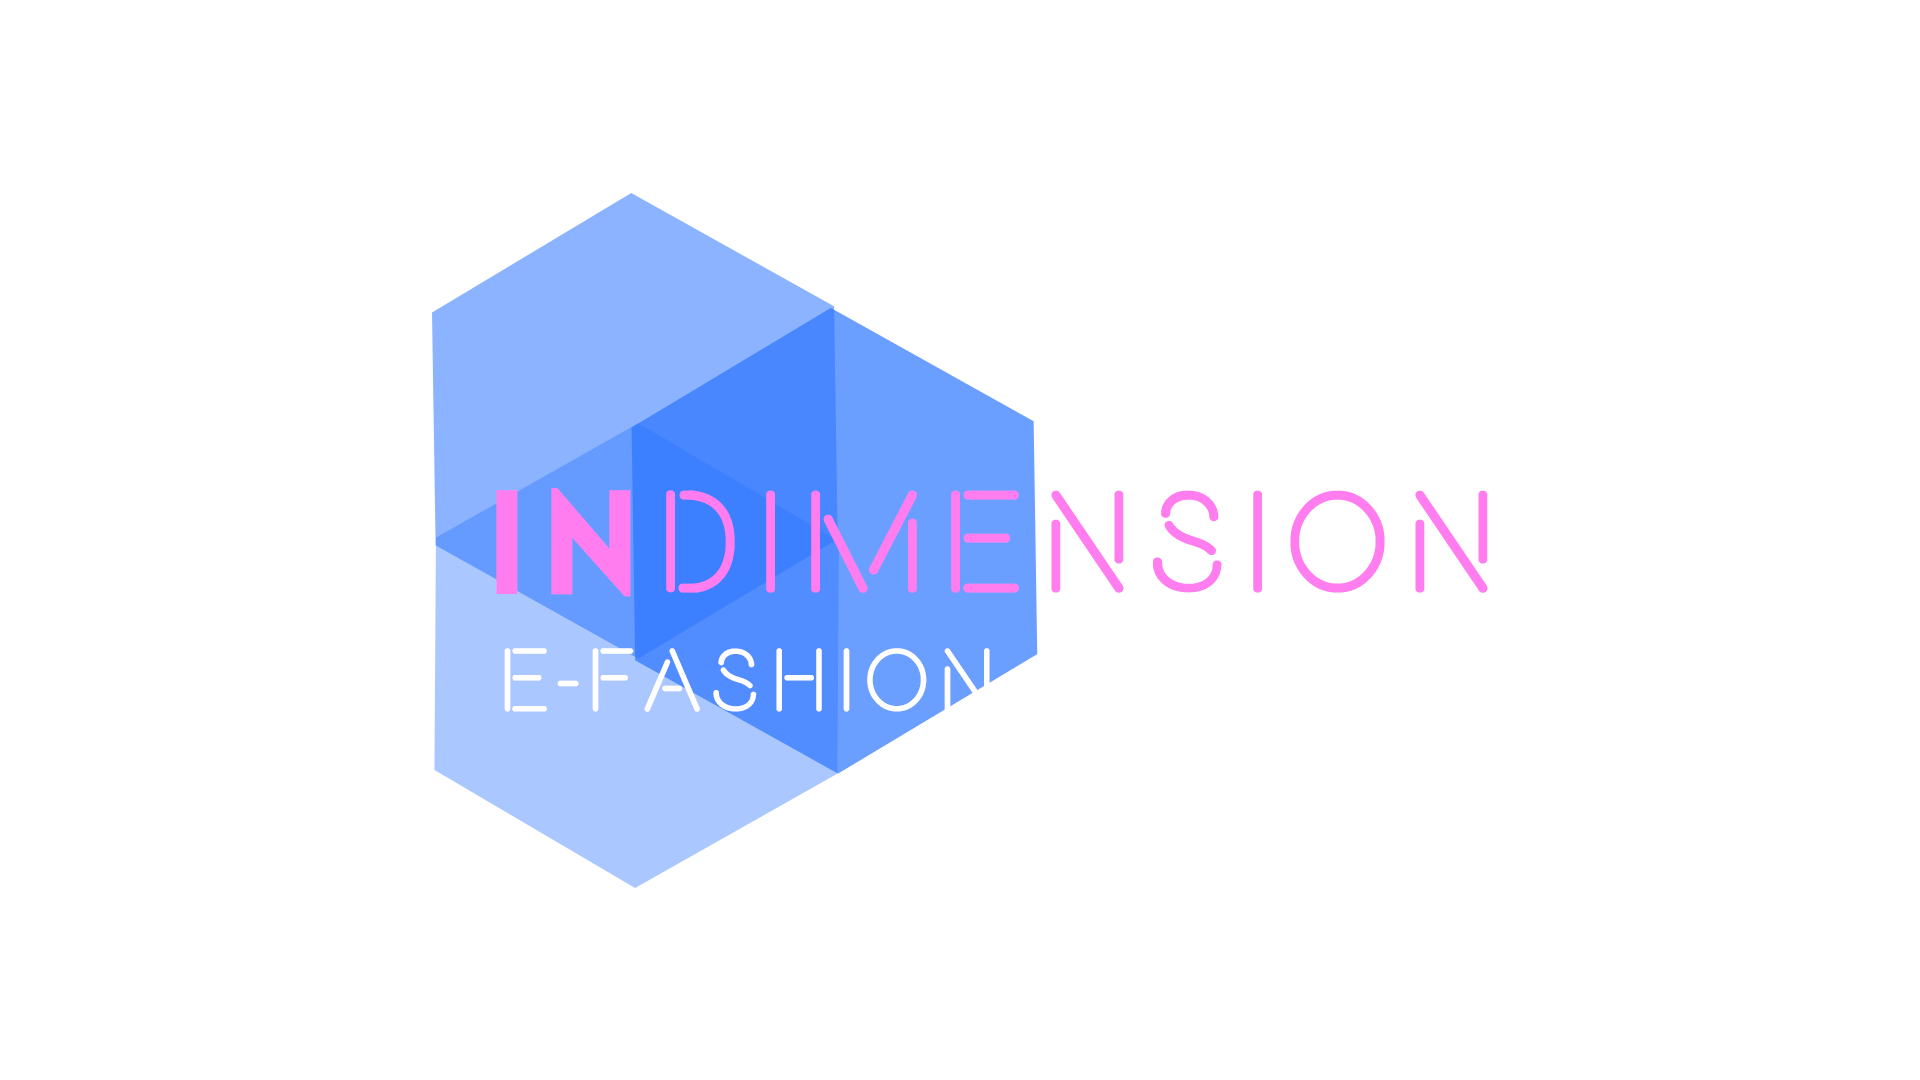 E-Fashion Awards